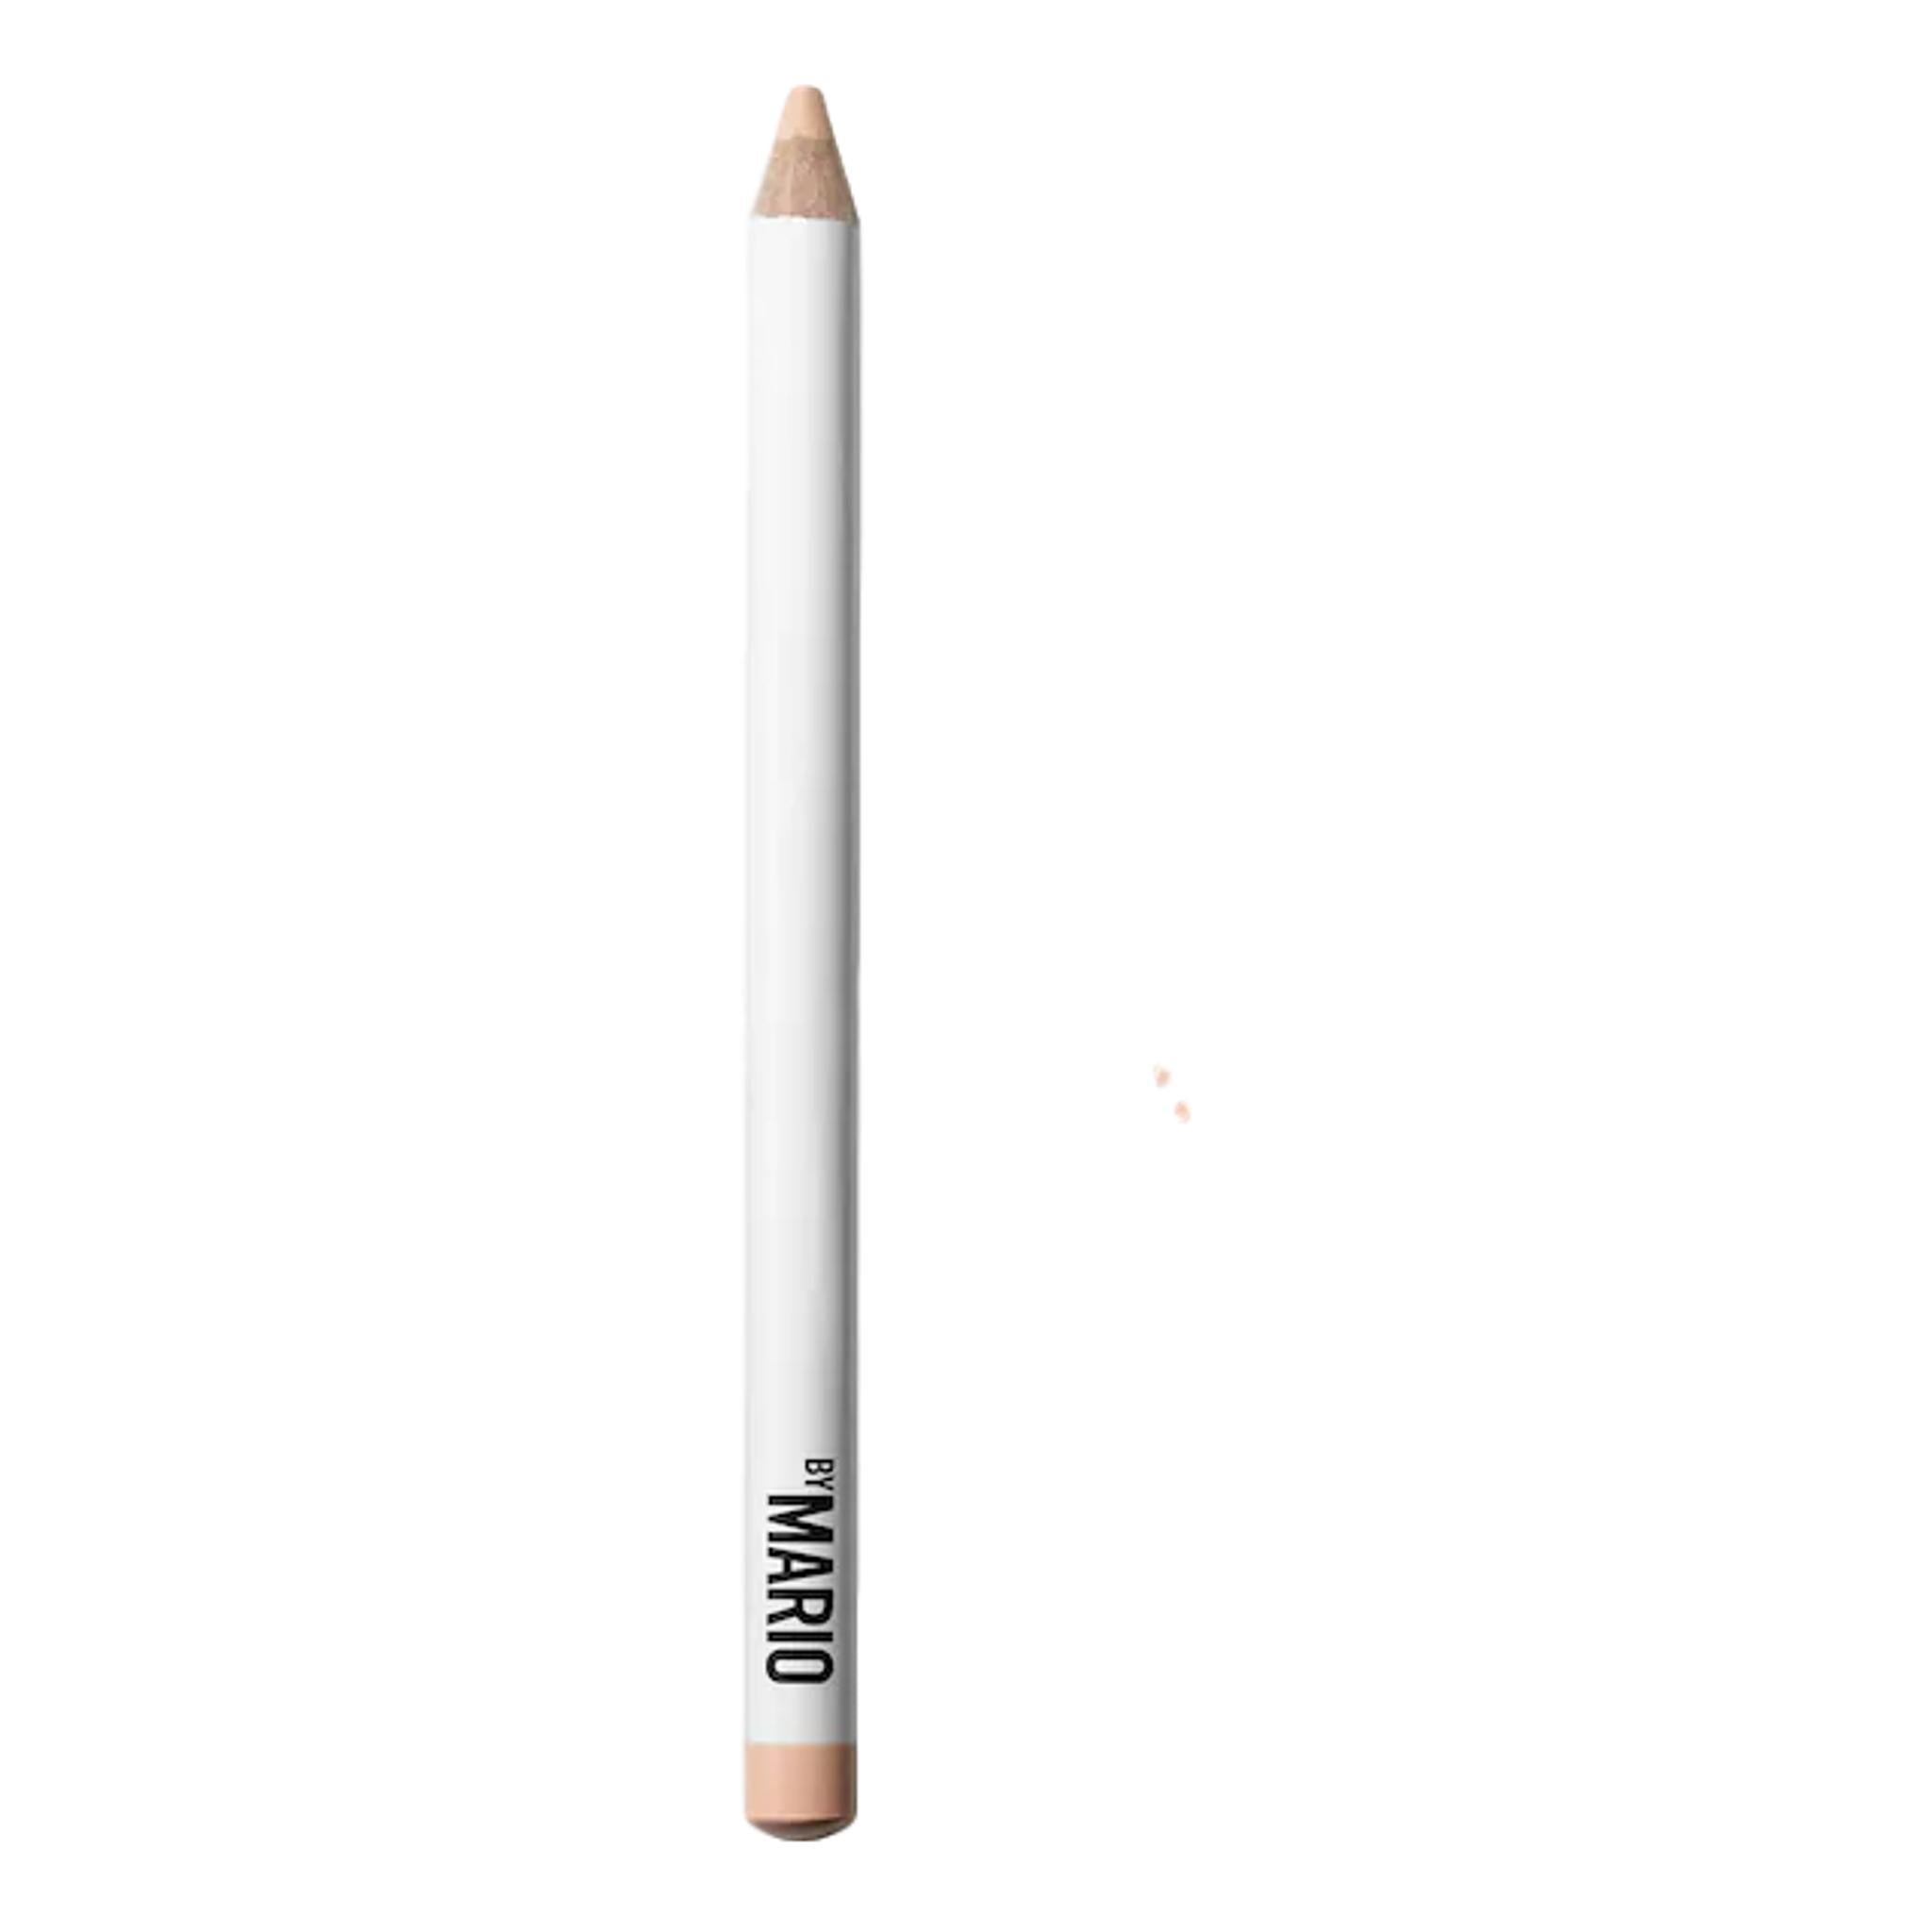 Makeup By Mario Master Mattes Brightening Eye Pencil - Light 1, Eye Pencil, London Loves Beauty